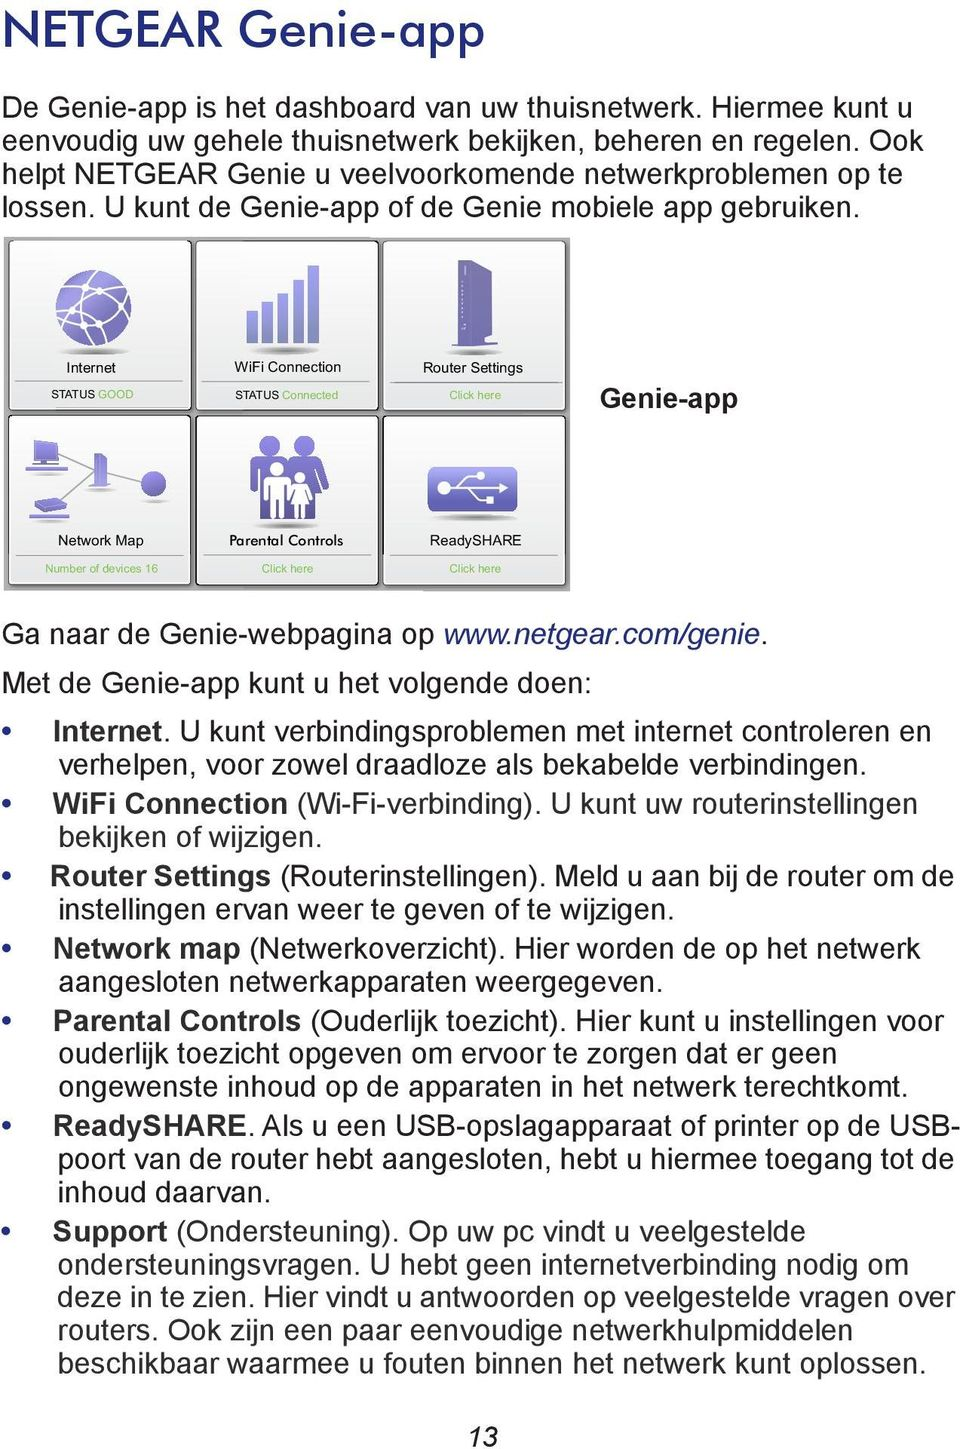 Internet STATUS GOOD WiFi Connection STATUS Connected Router Settings Click here Genie-app Network Map Parental Controls ReadySHARE Number of devices 16 Click here Click here Ga naar de